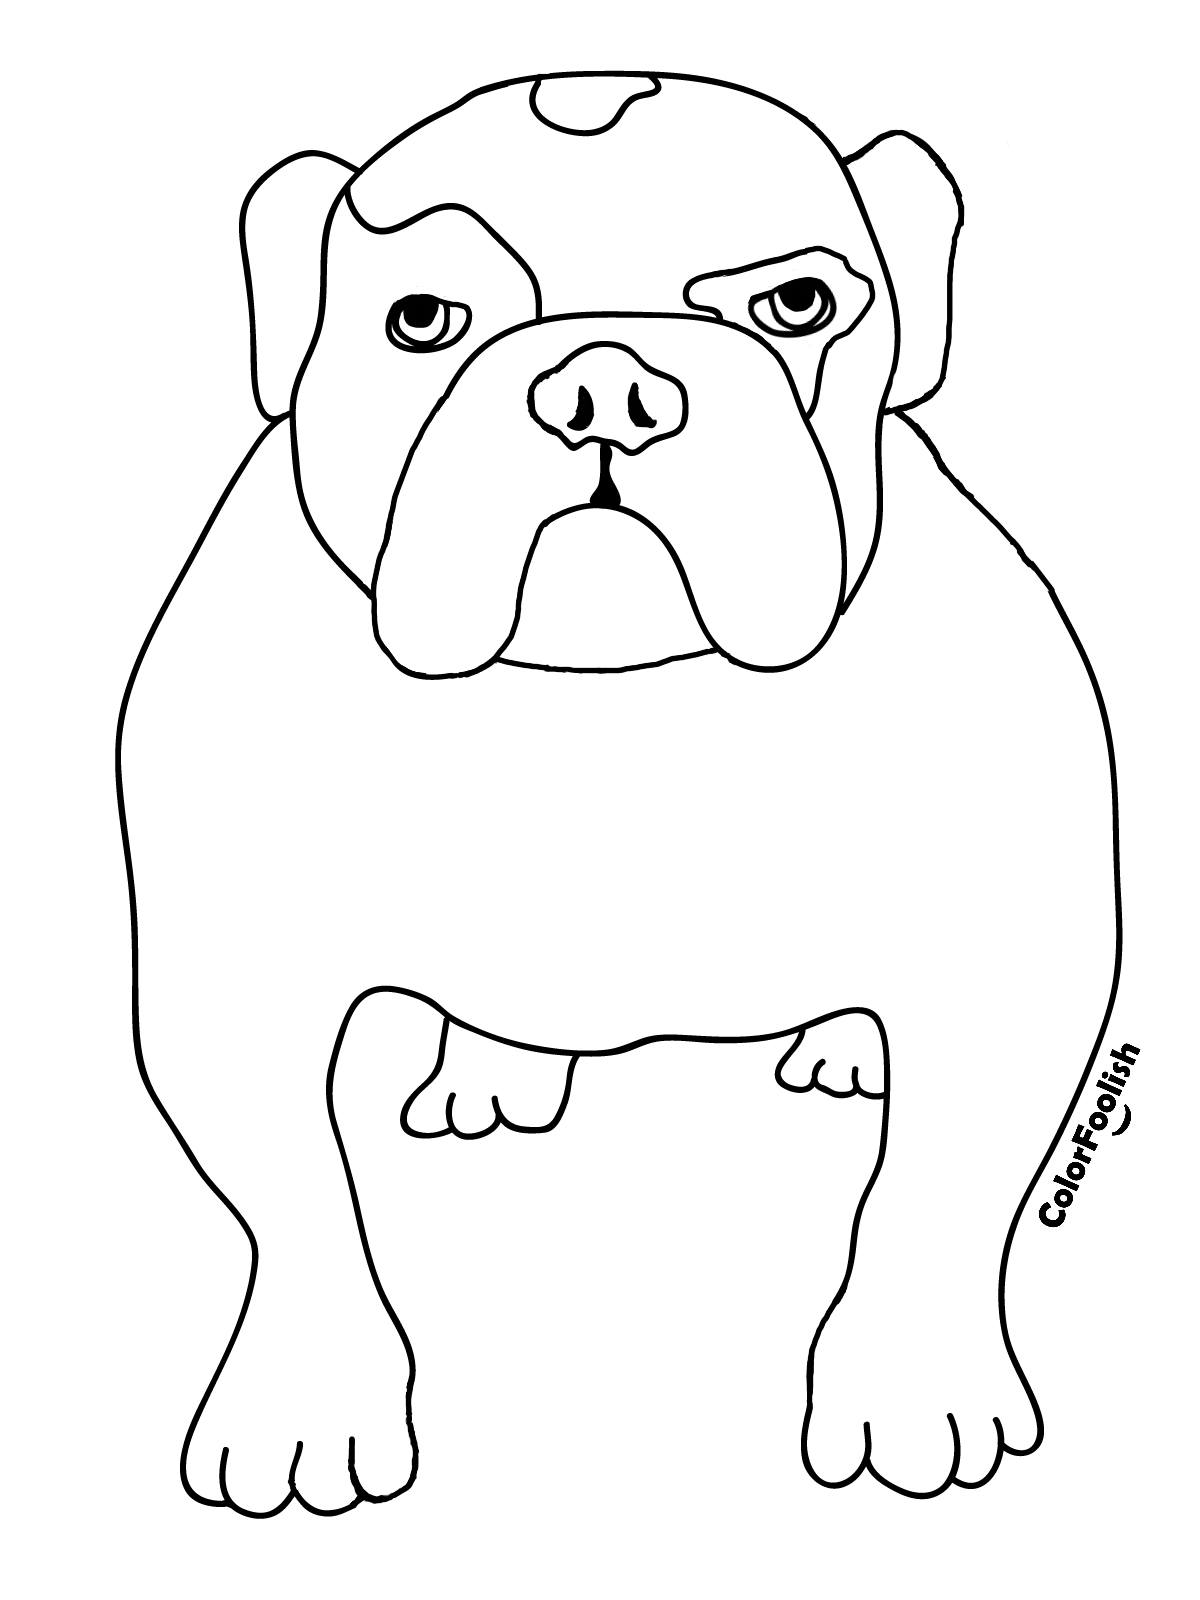 Coloring page of an English bulldog on all fours